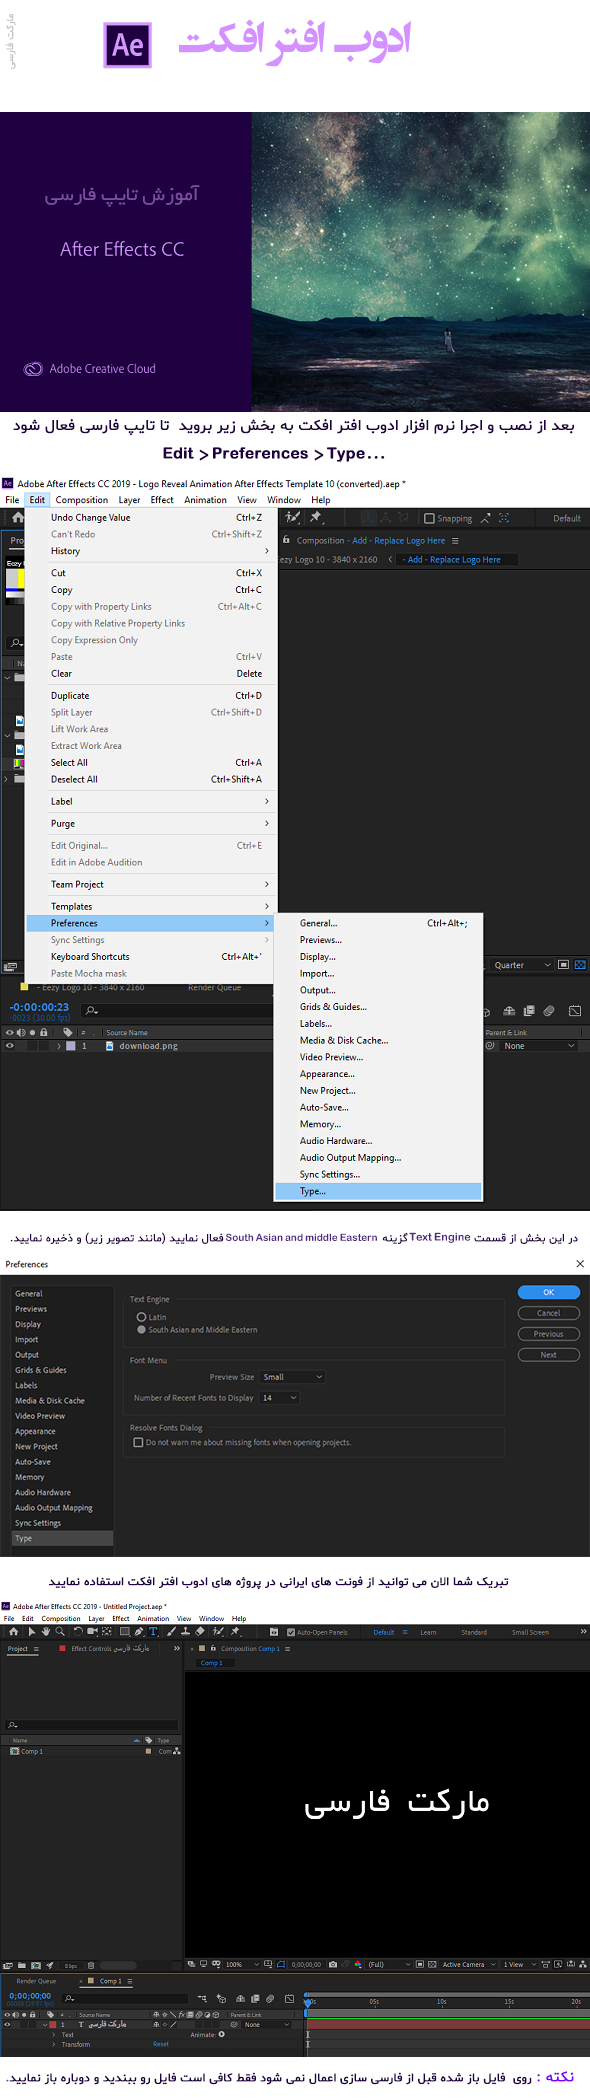 Adobe After Effects CC 2019 Farsi